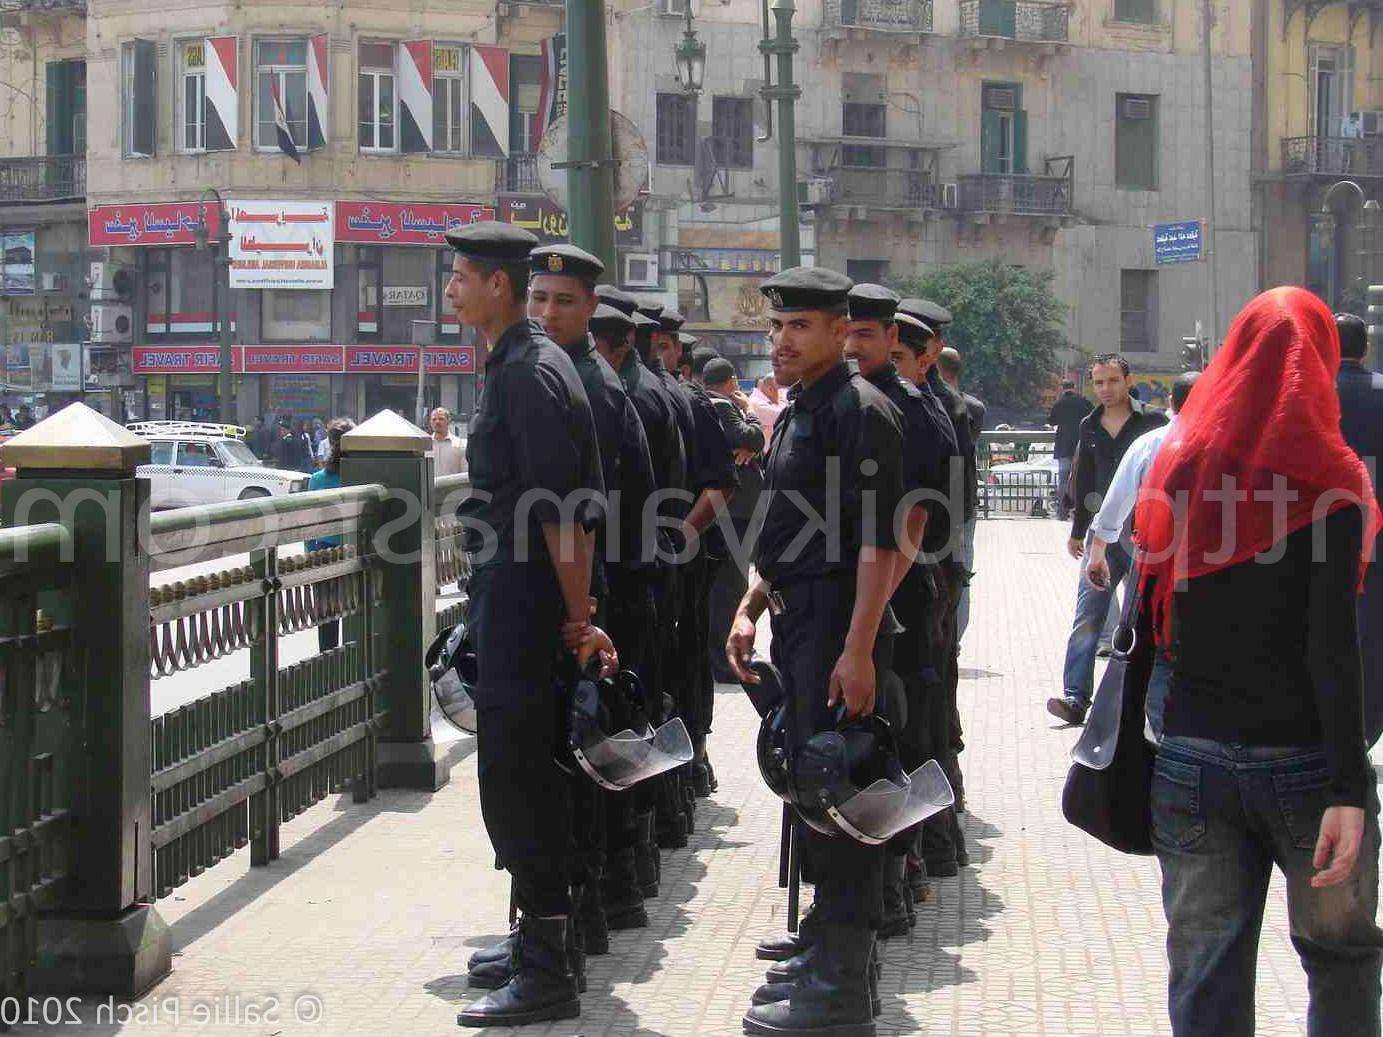 CAIRO: A 49-year-old Egyptian